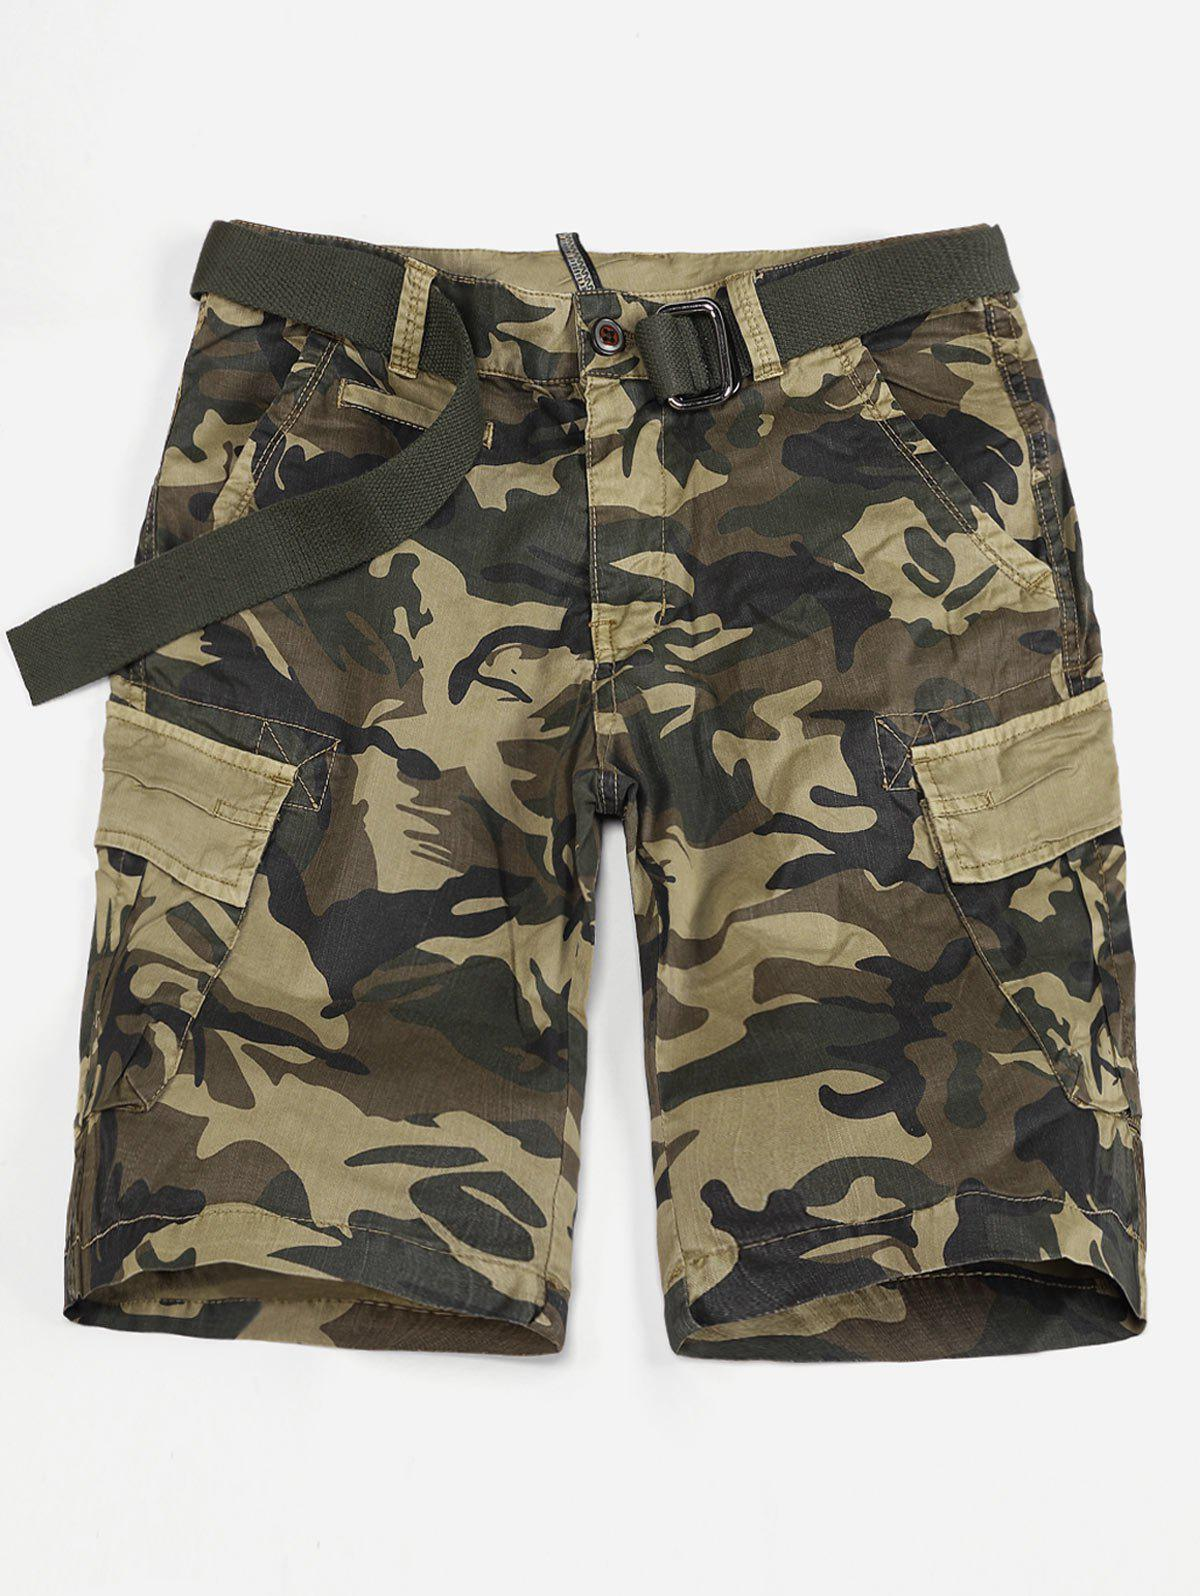 Camo Print Flap Pocket Cargo Shorts - DIGITAL DESERT CAMOUFLAGE XL